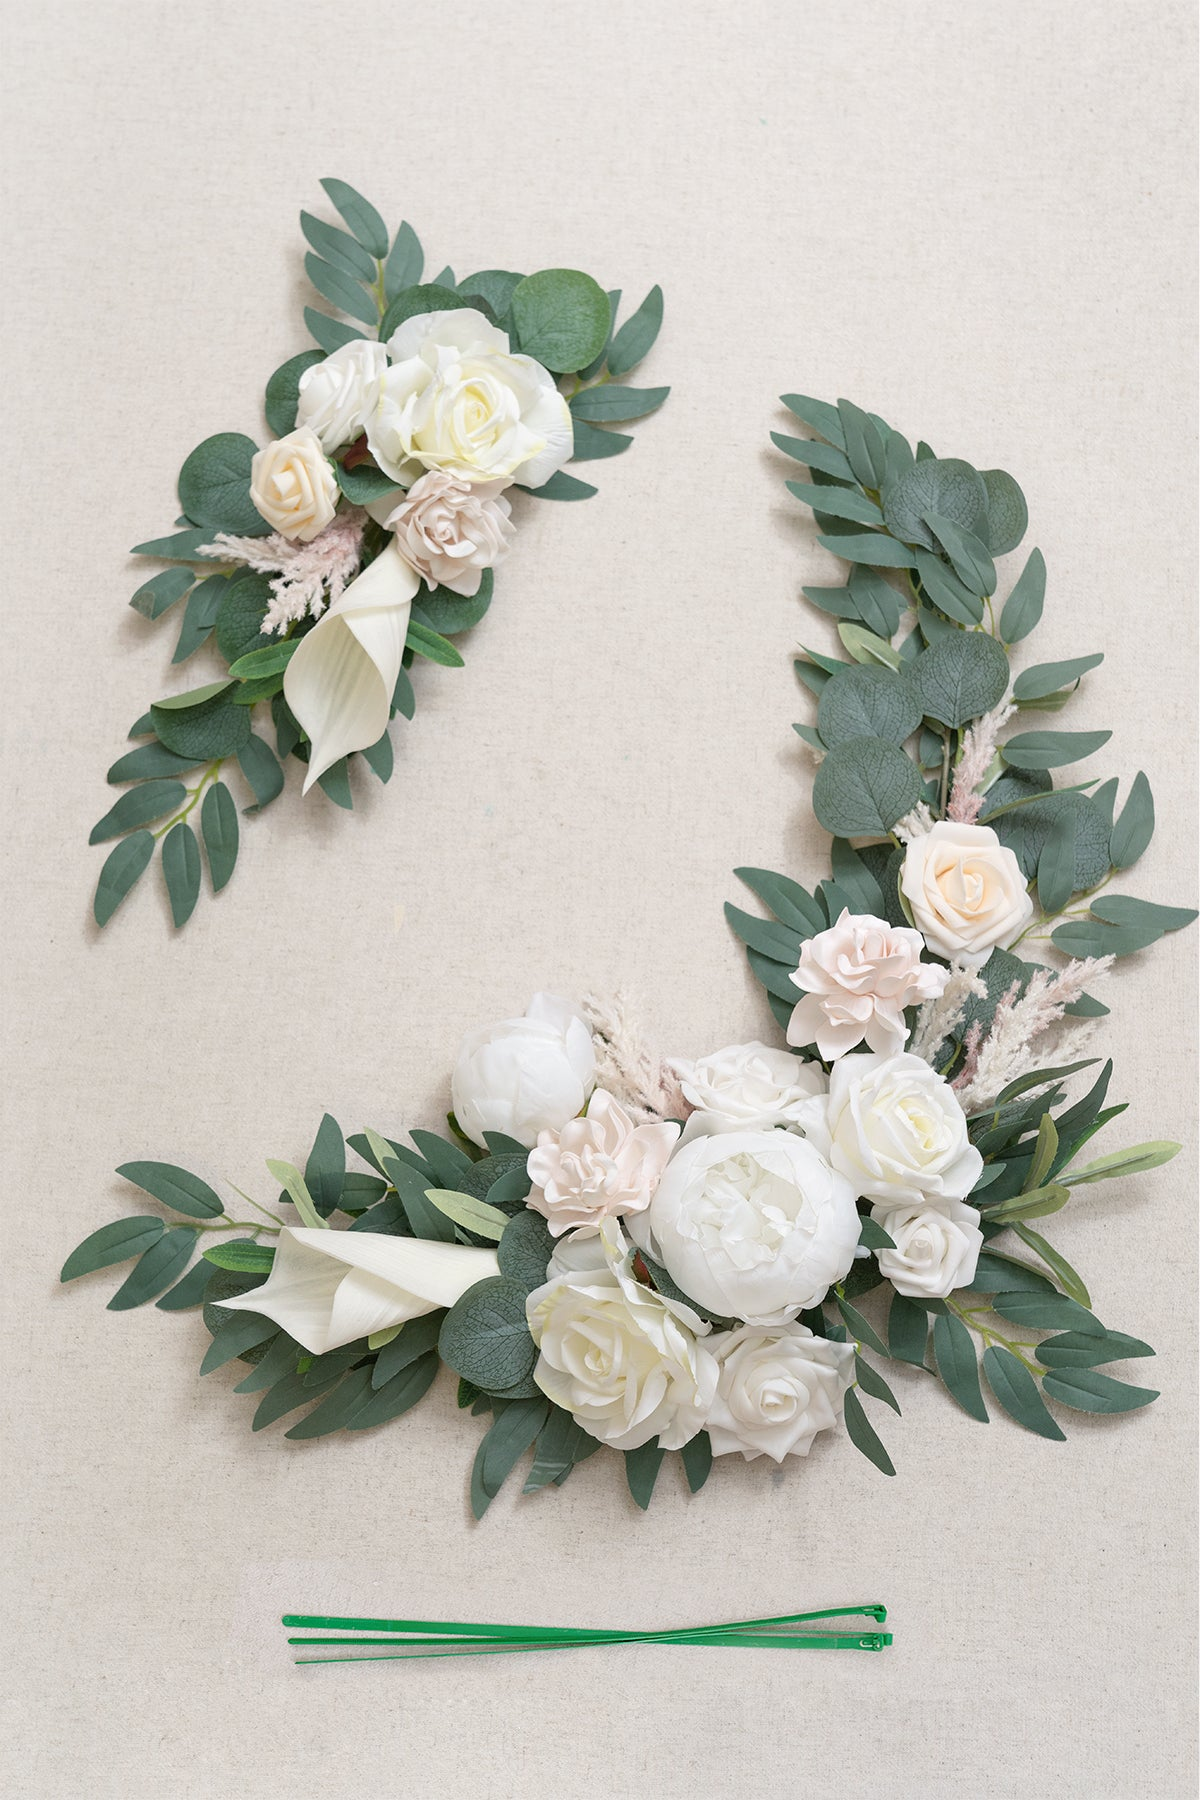 Flower Sign Décor (Set of 2) - White & Sage